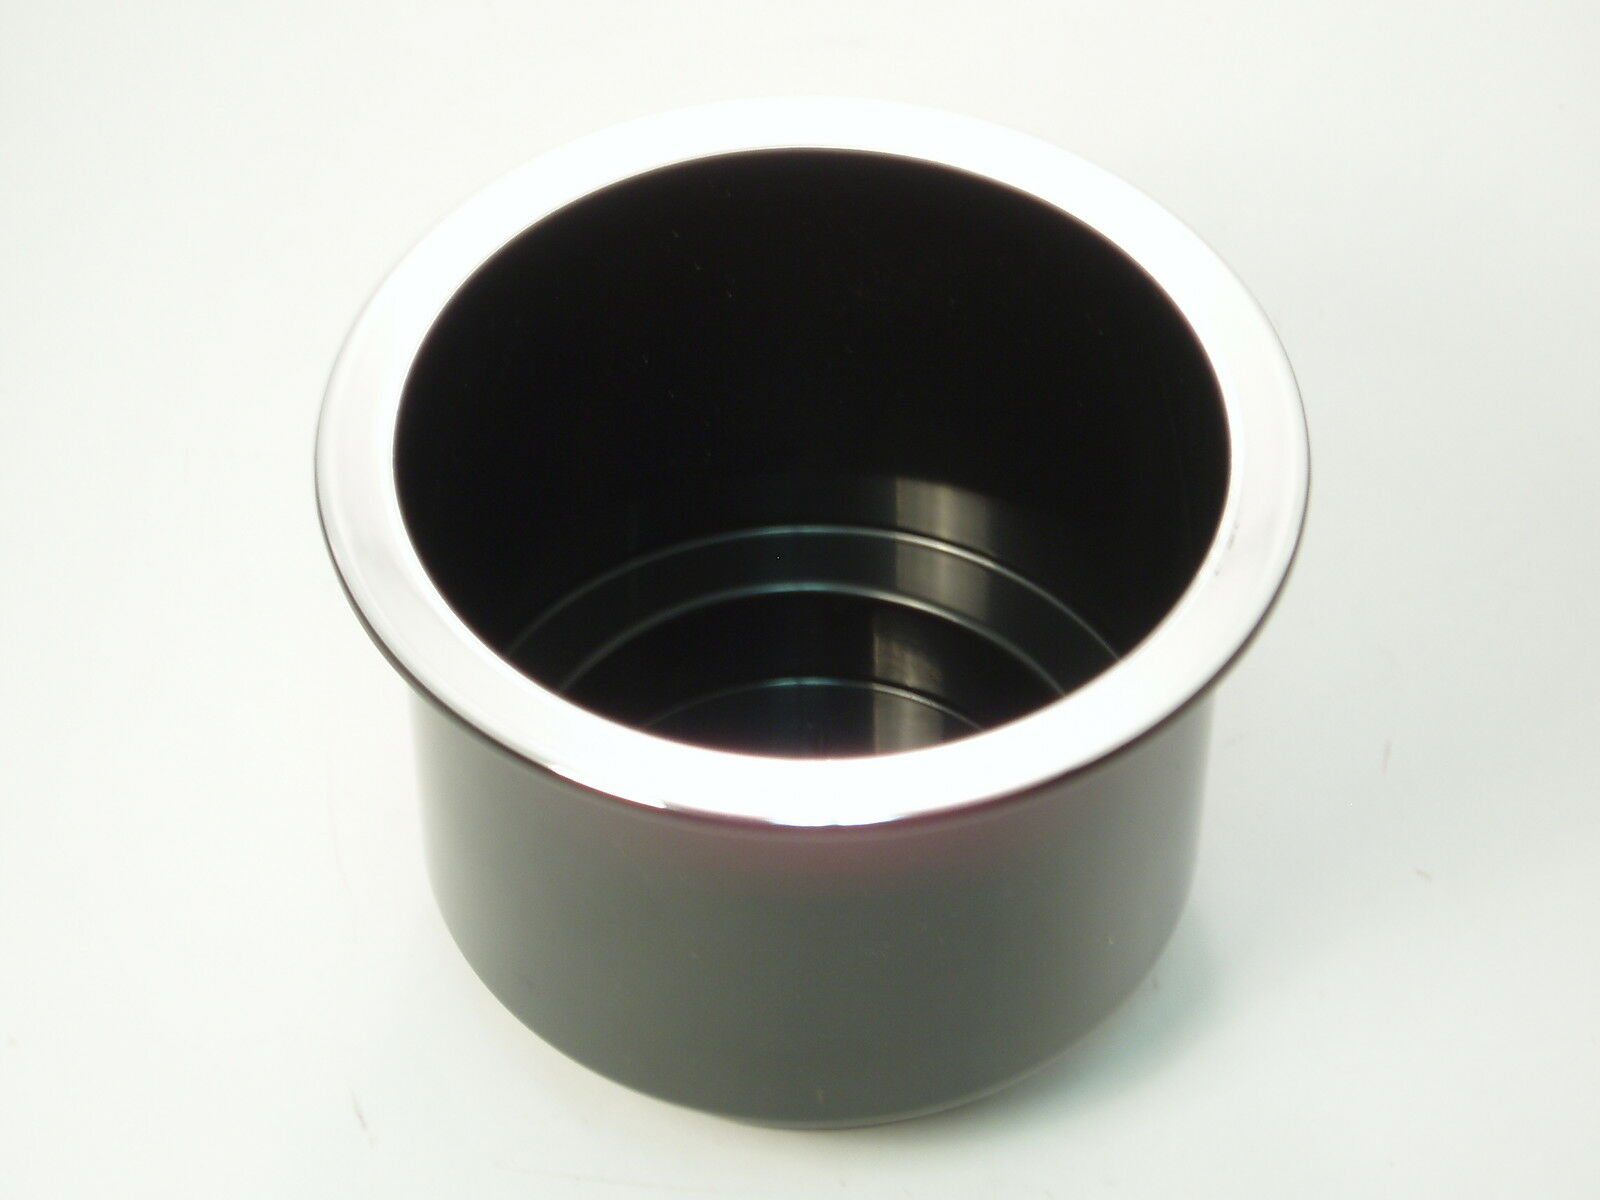 Car cup holder inserts Lookup BeforeBuying : 57 from www.lookup-beforebuying.com size 1600 x 1200 jpeg 77kB